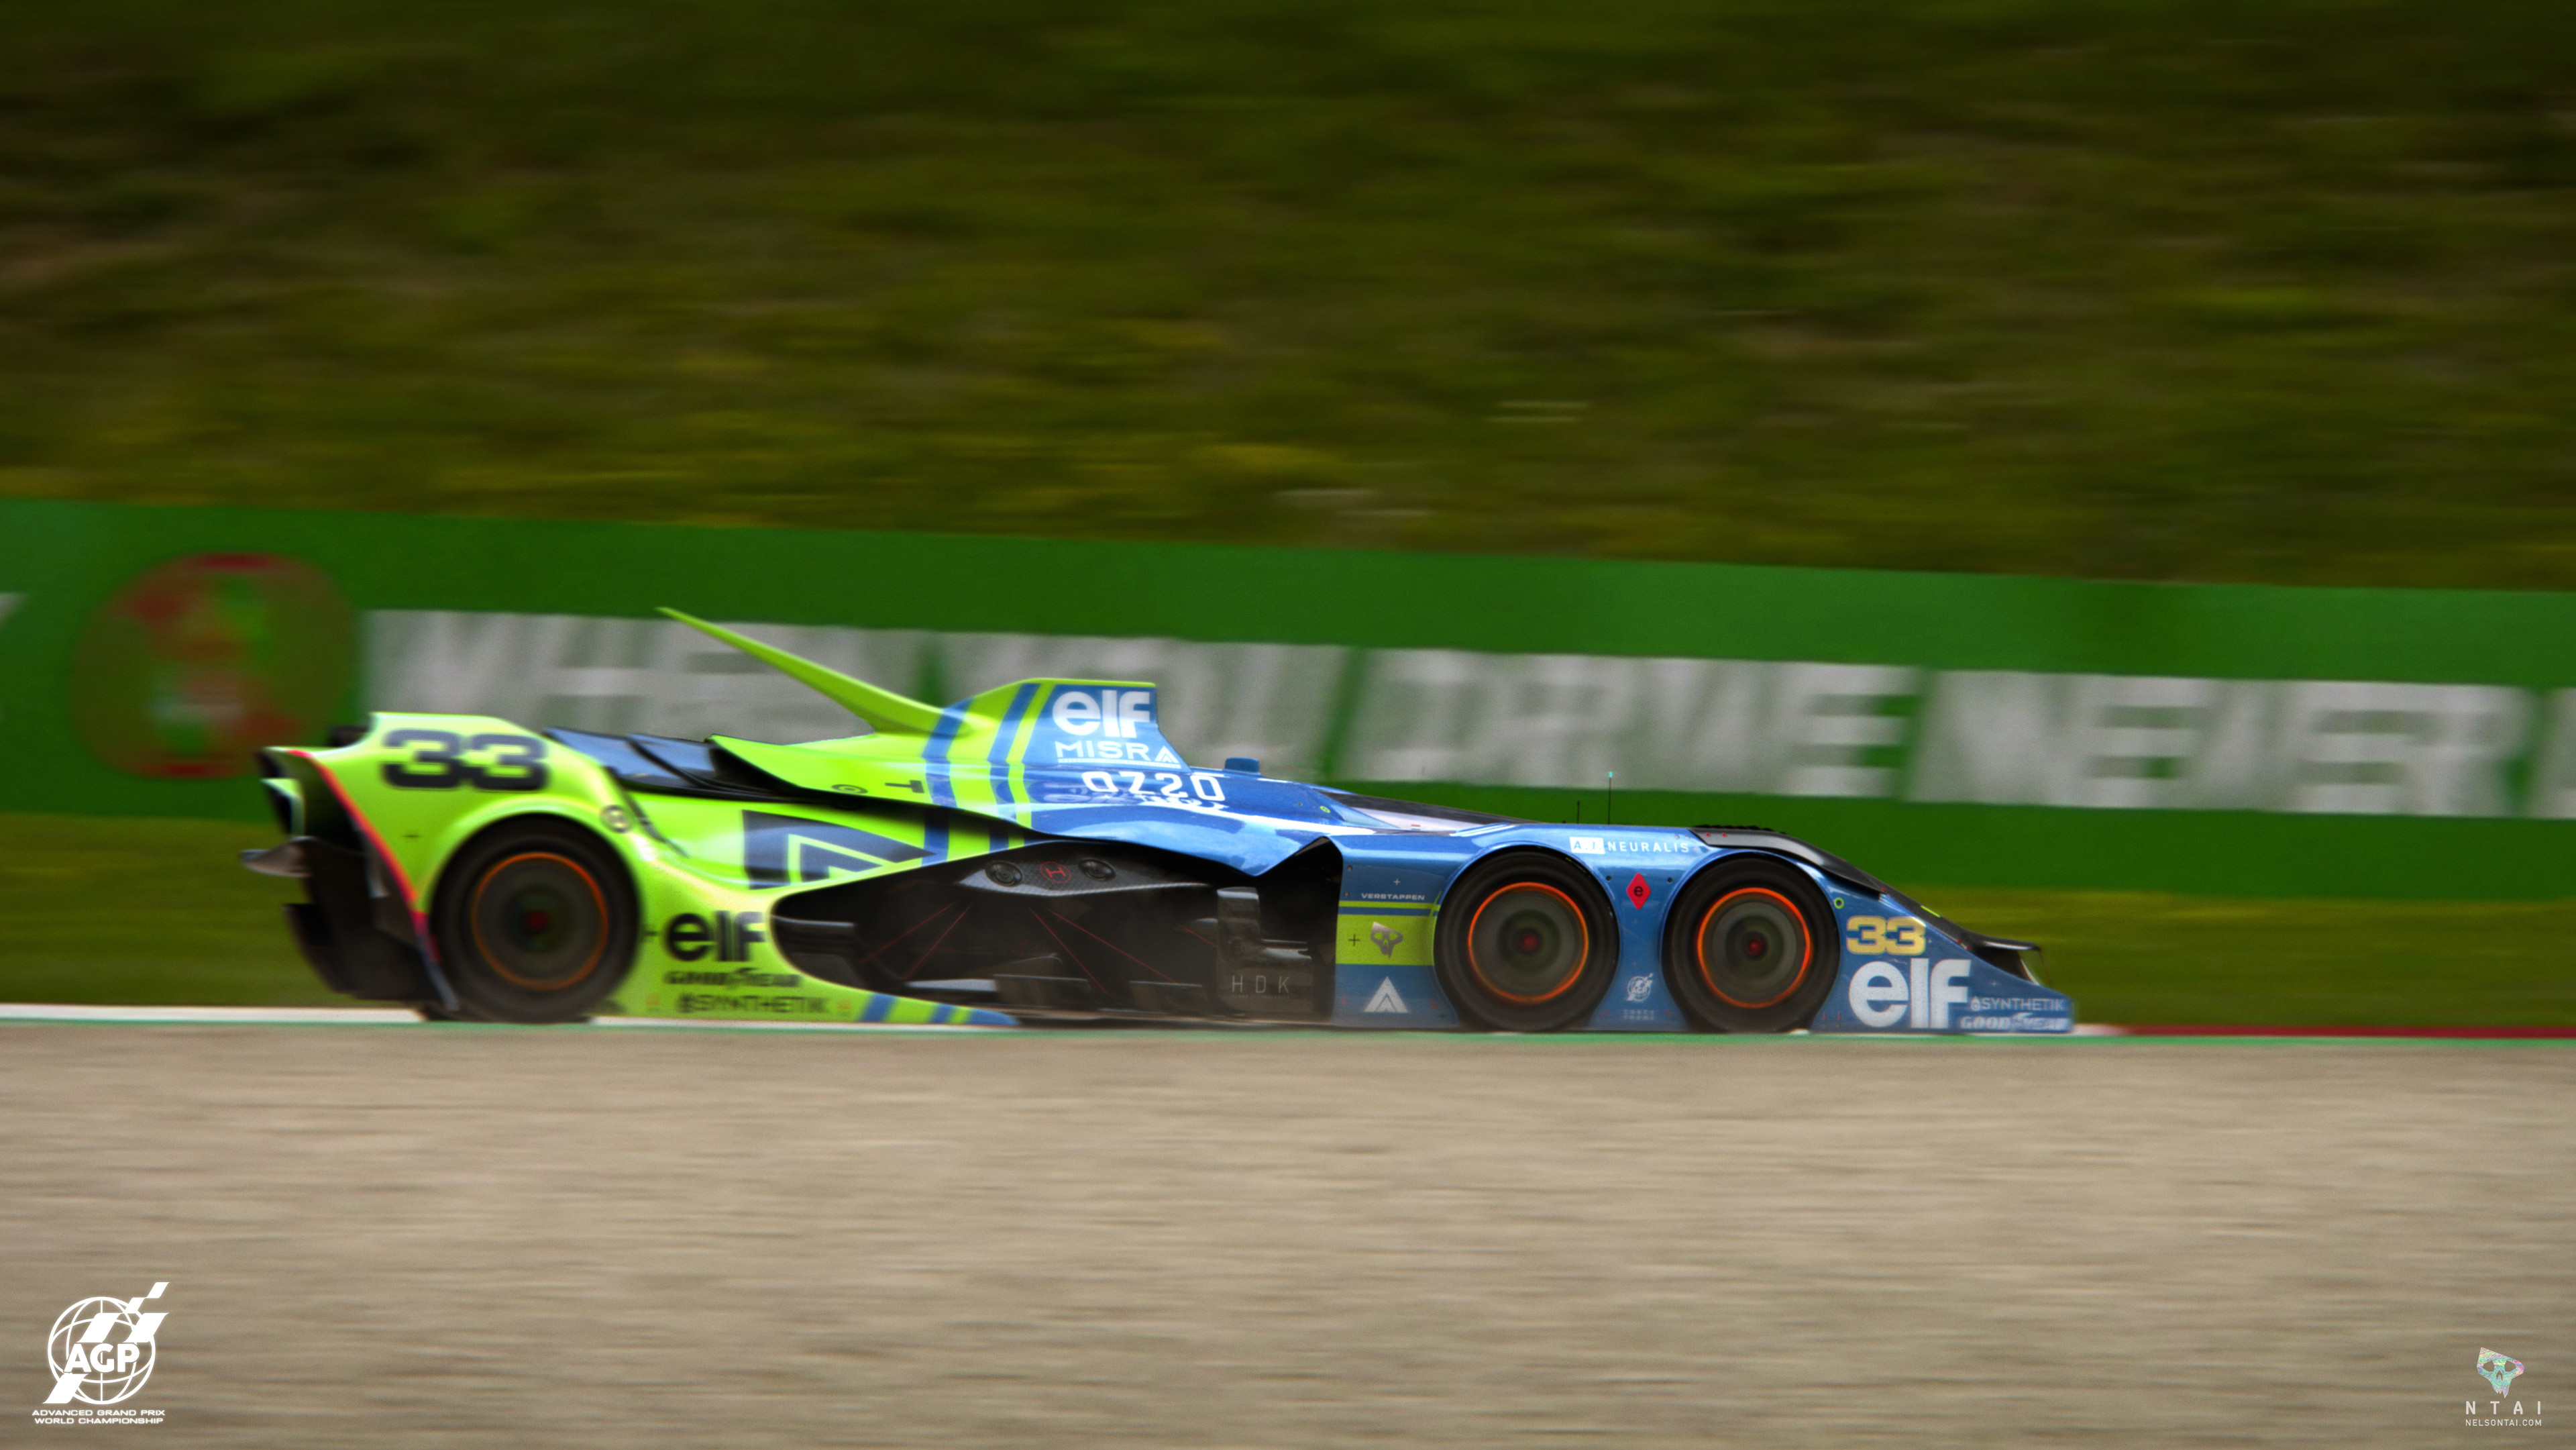 """PRE-SEASON TESTING :: 001 """"The cornering speed of this car is incredible!"""""""